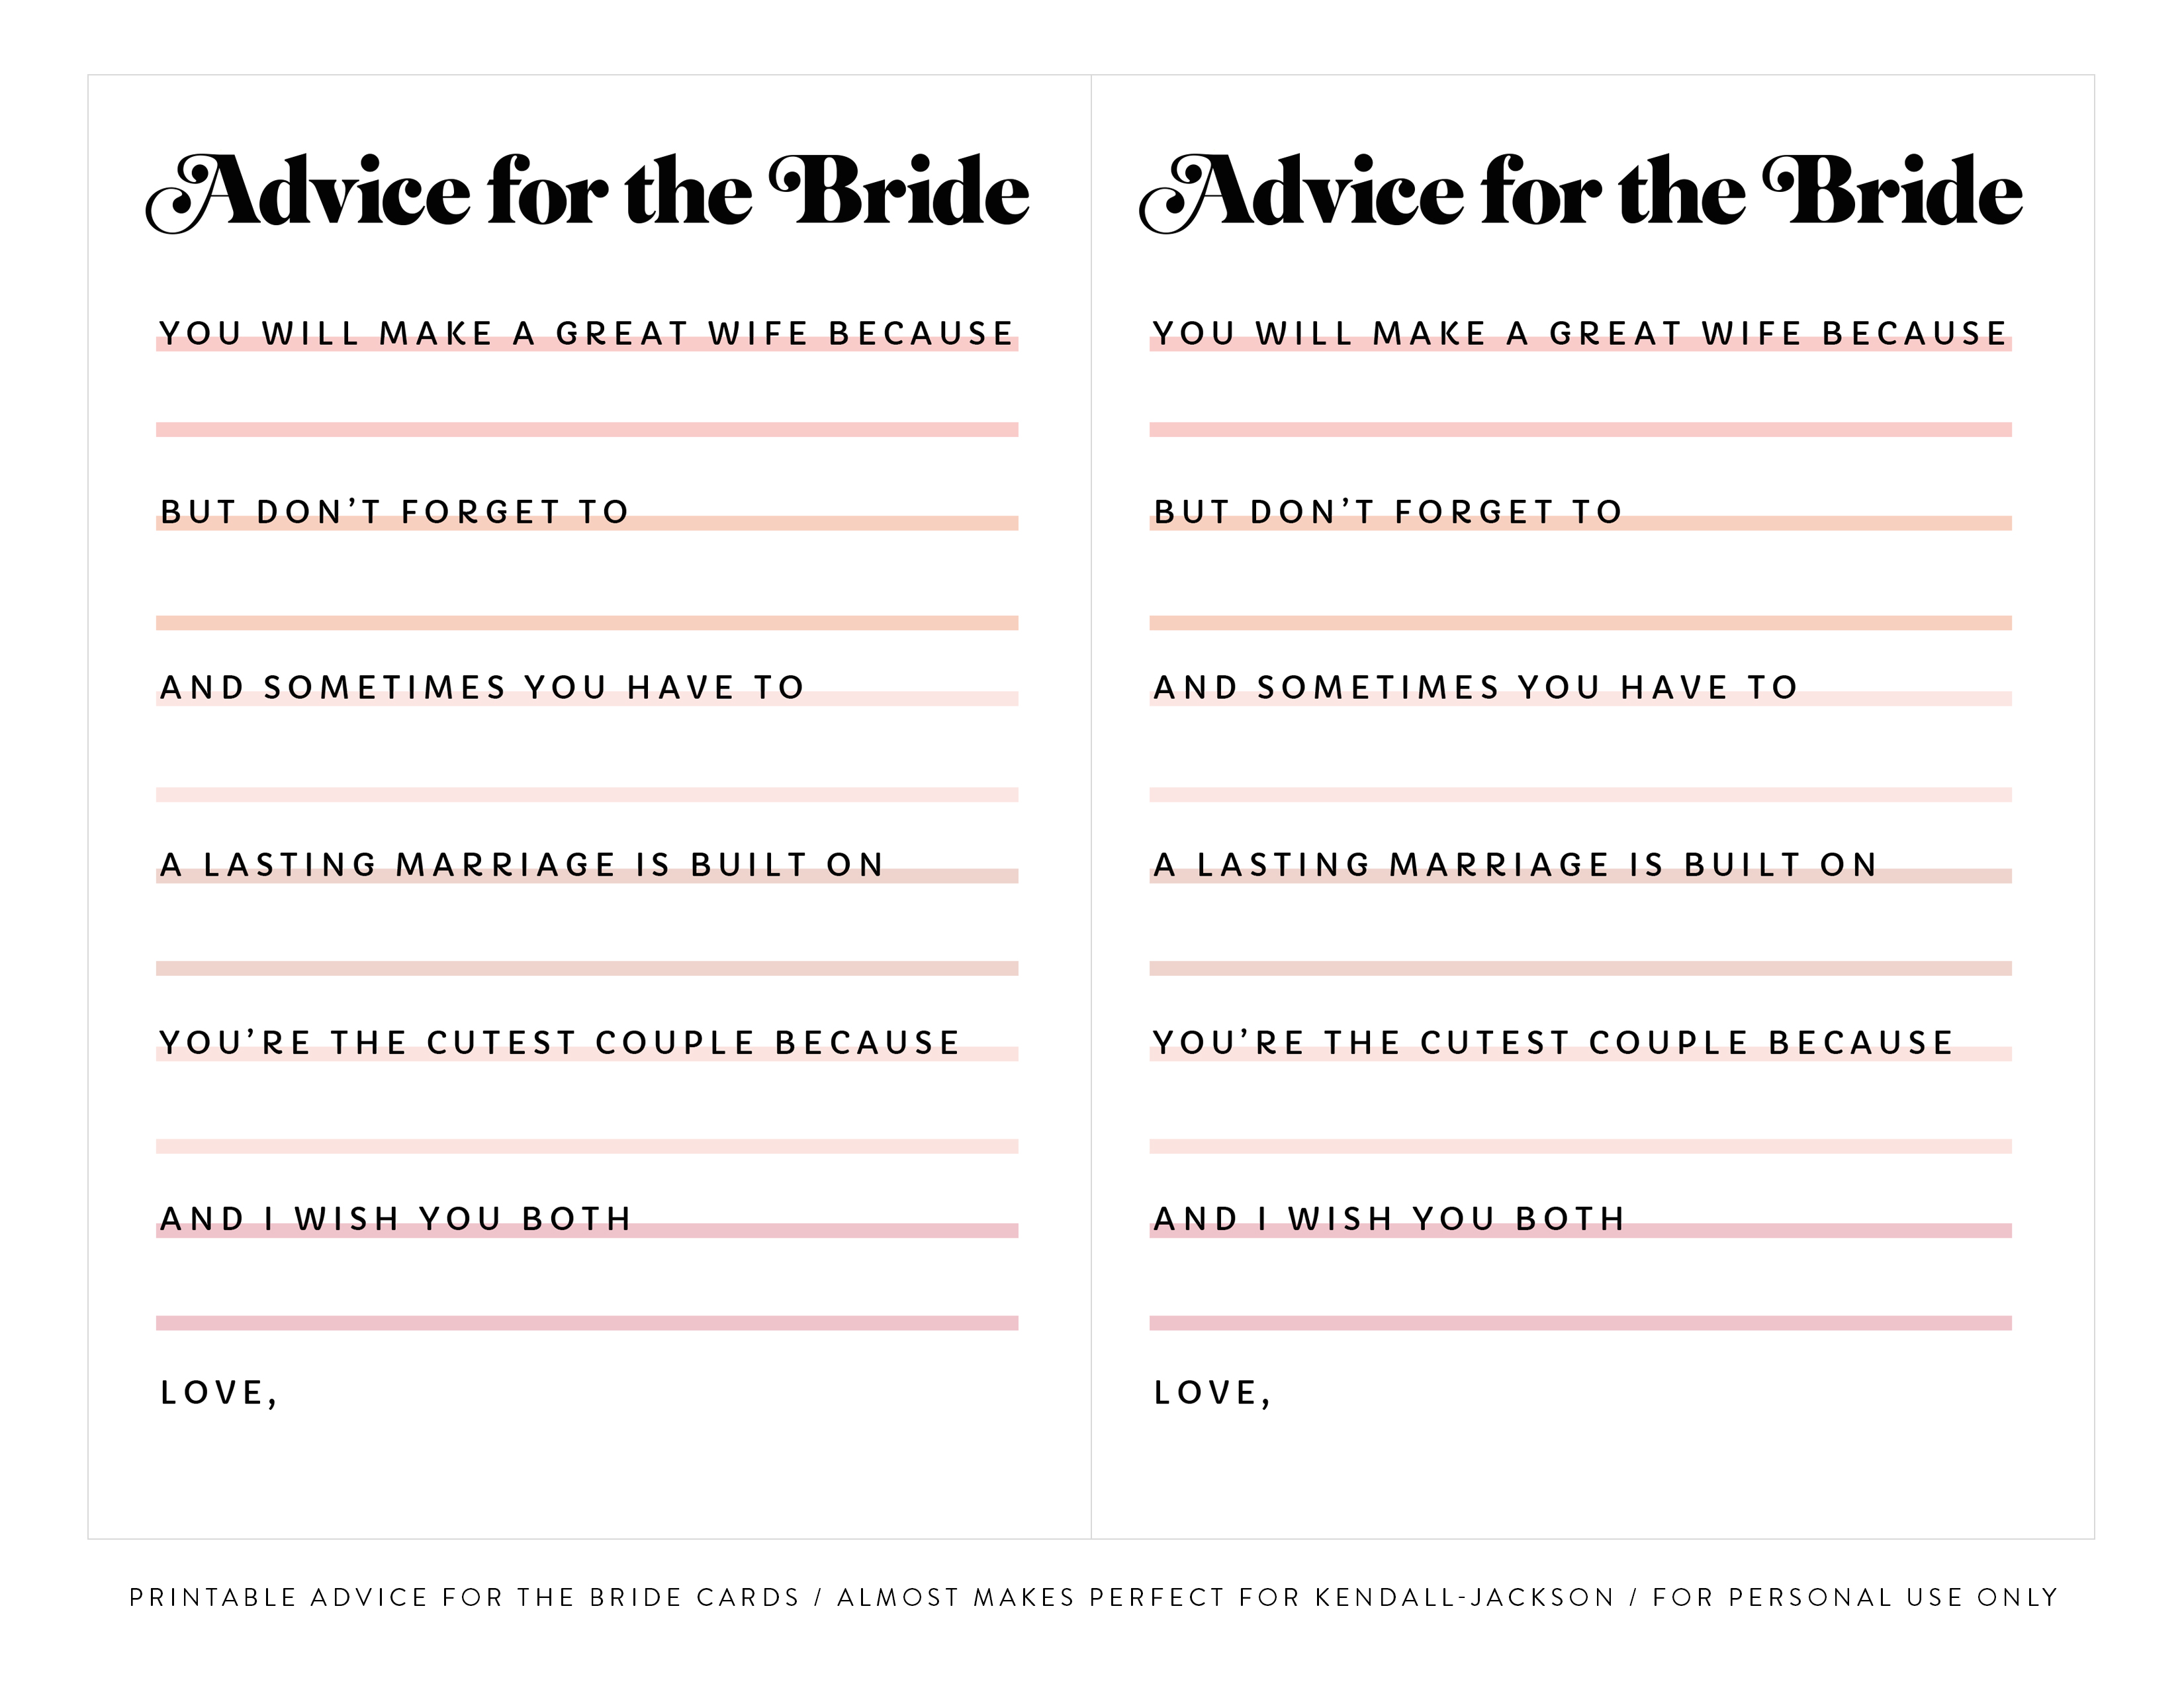 image relating to Bridal Shower Mad Libs Free Printable titled Printable \u201cAdvice for the Bride\u201d Bridal Shower Playing cards